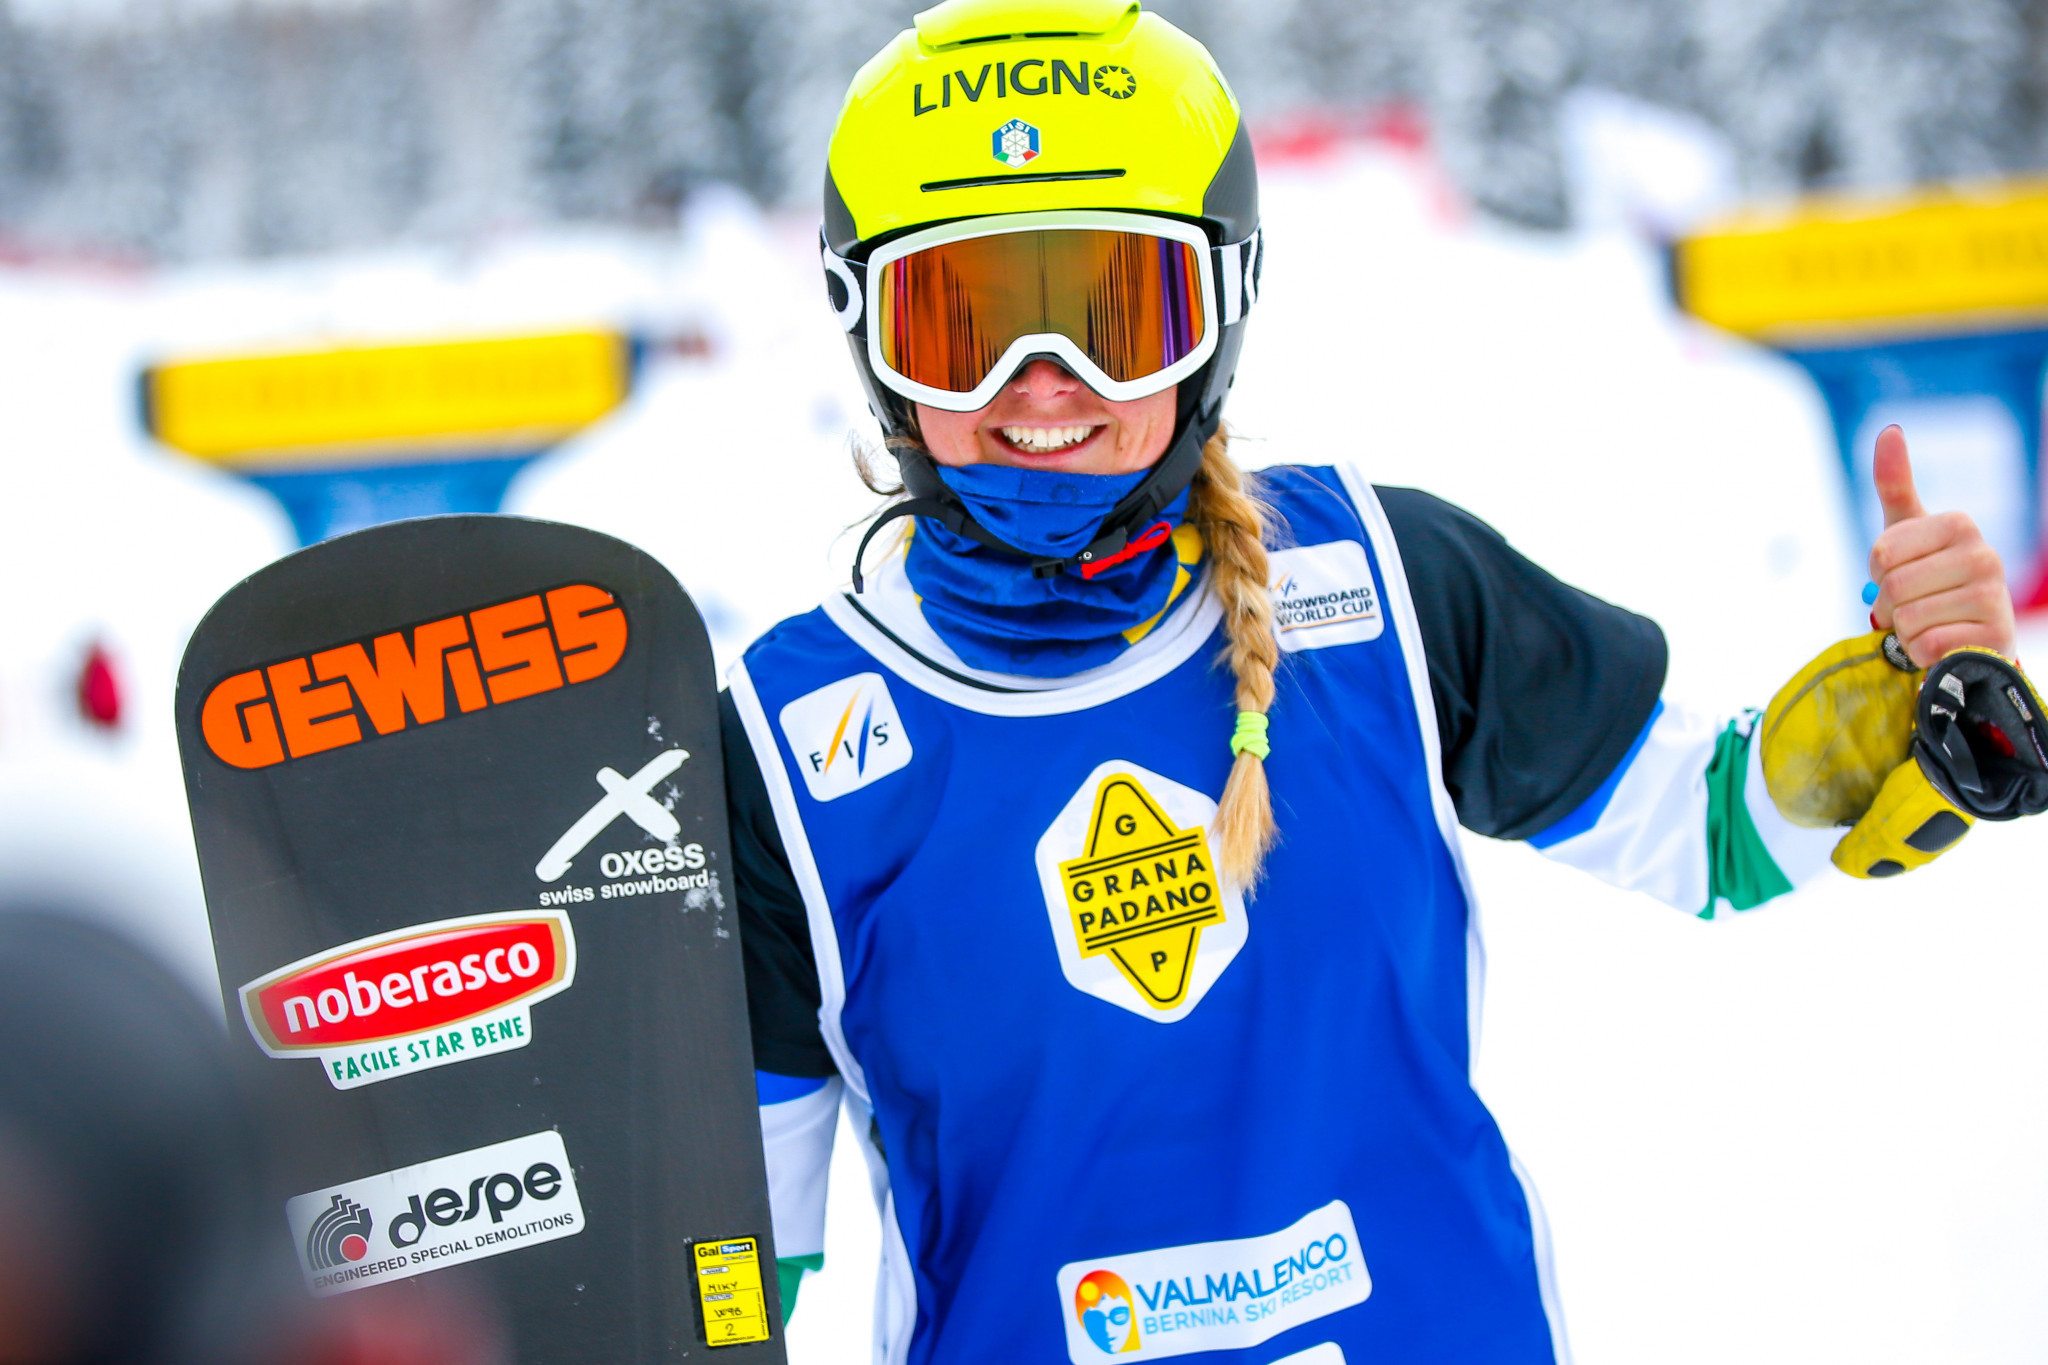 Moioli triumphs in dominant display at Snowboard Cross World Cup in Austria